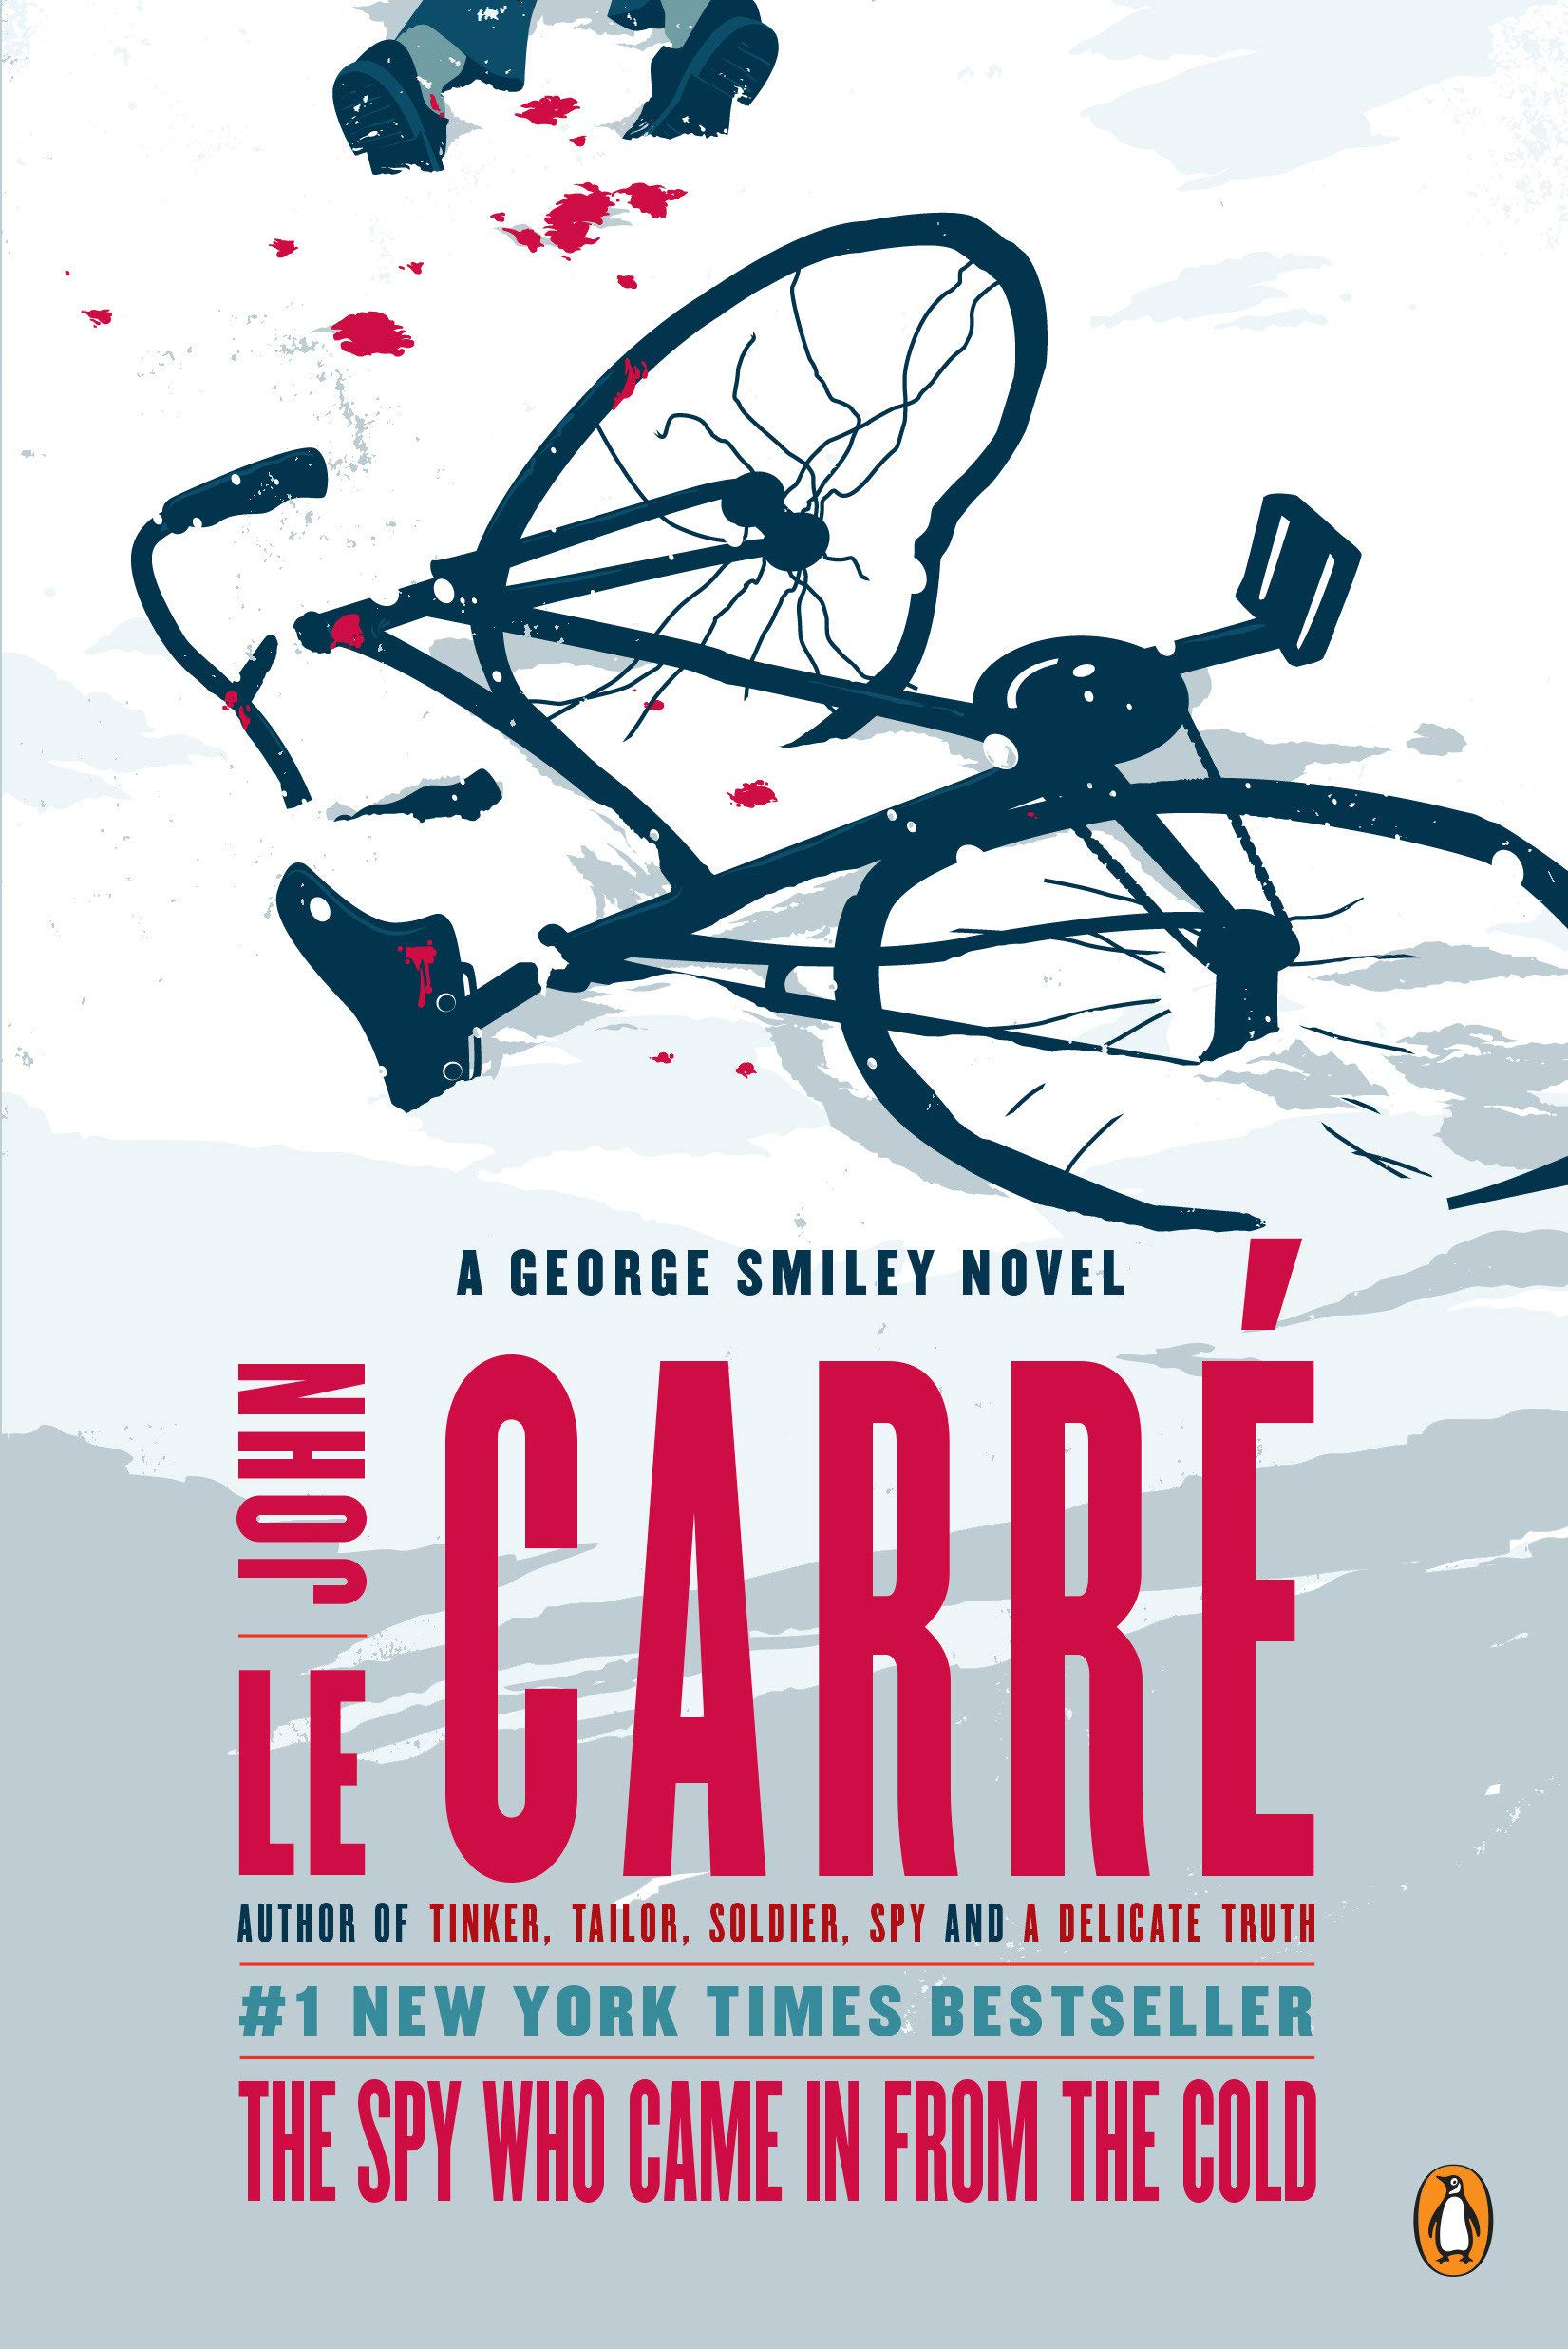 Amazon.com: The Spy Who Came in from the Cold: A George Smiley Novel  (George Smiley Novels) (2015143124757): le Carré, John: Books